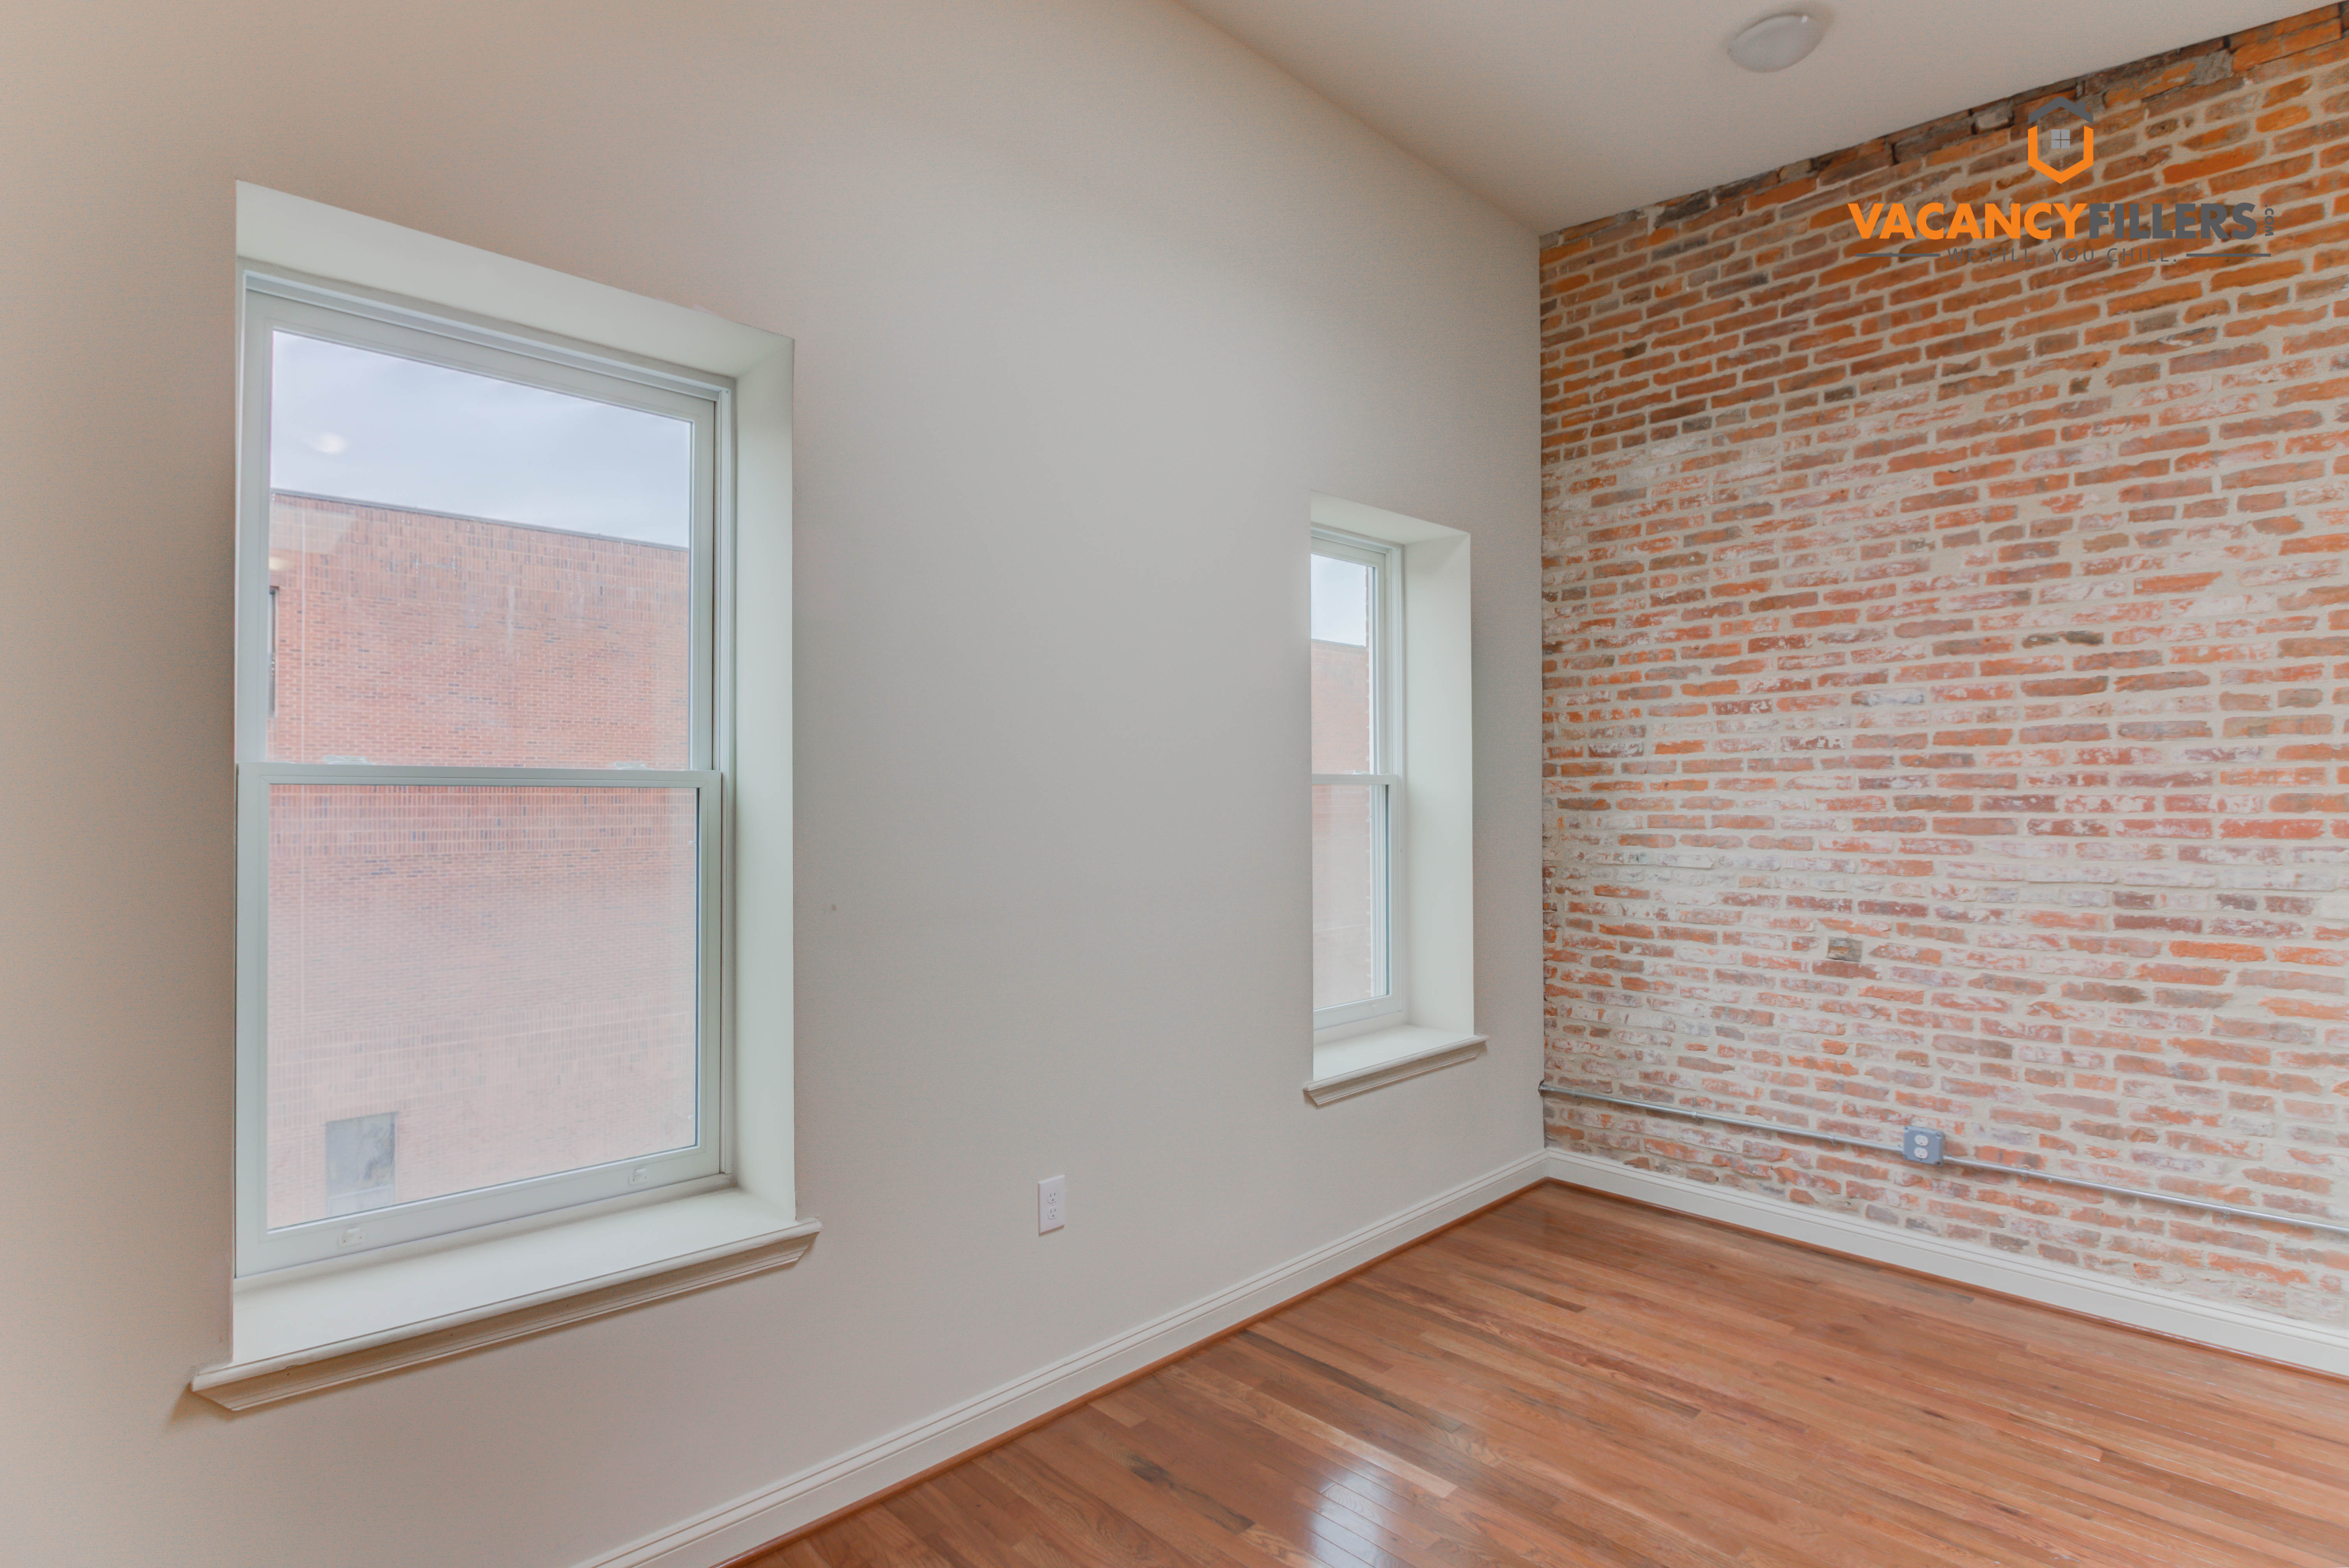 1 Bedroom Apartments For Rent In Baltimore 28 Images